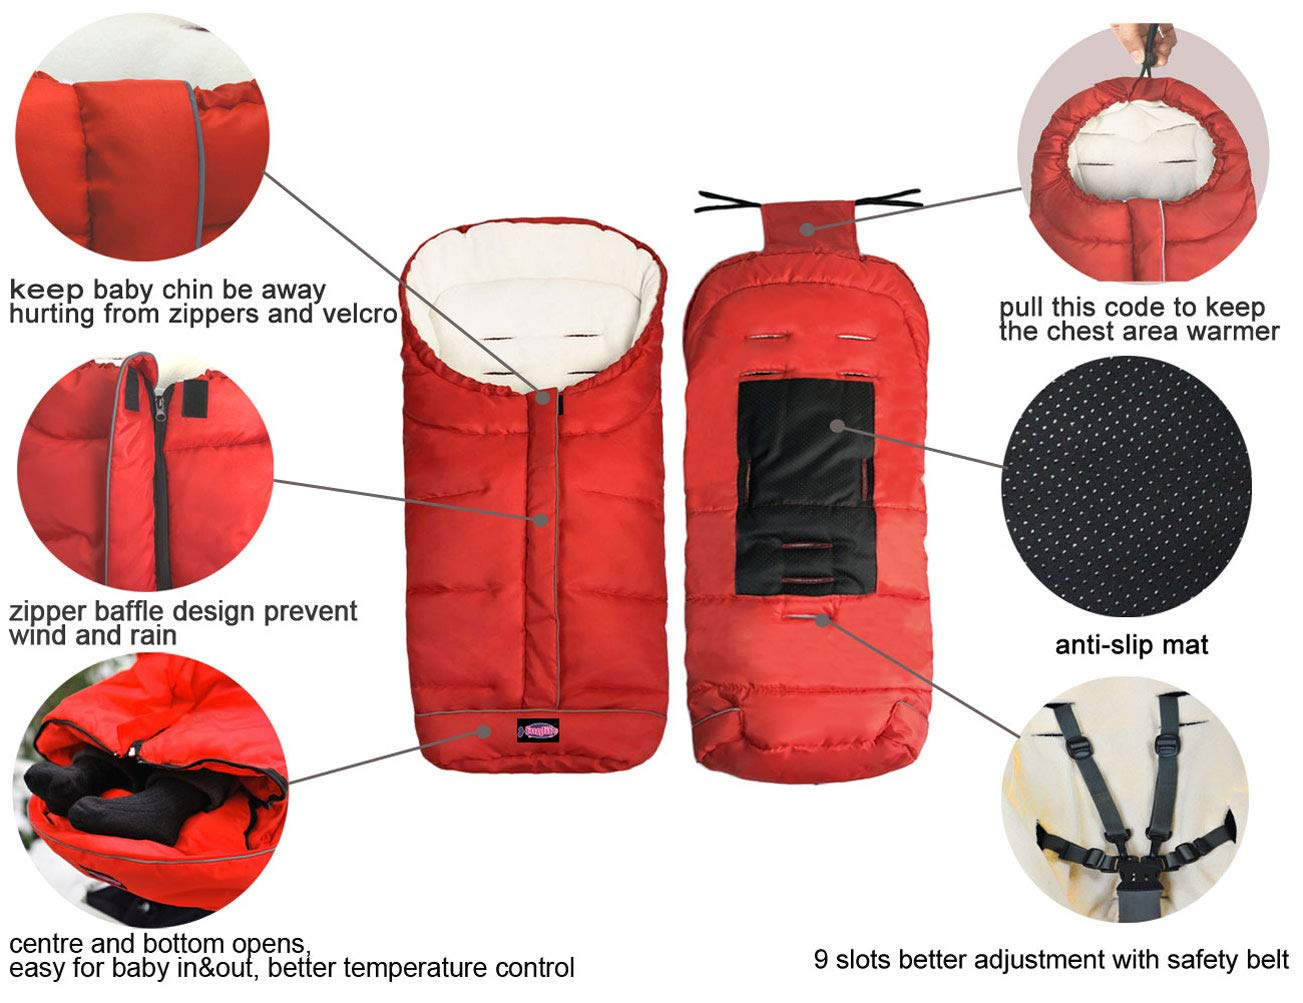 Cozy Baby Sleeping Bag Cocoon Adaptable for Most Style Strollers Water Repellent,Anti-Slip,Extendable,Multifunction Use Footmuff for Stroller Blanket